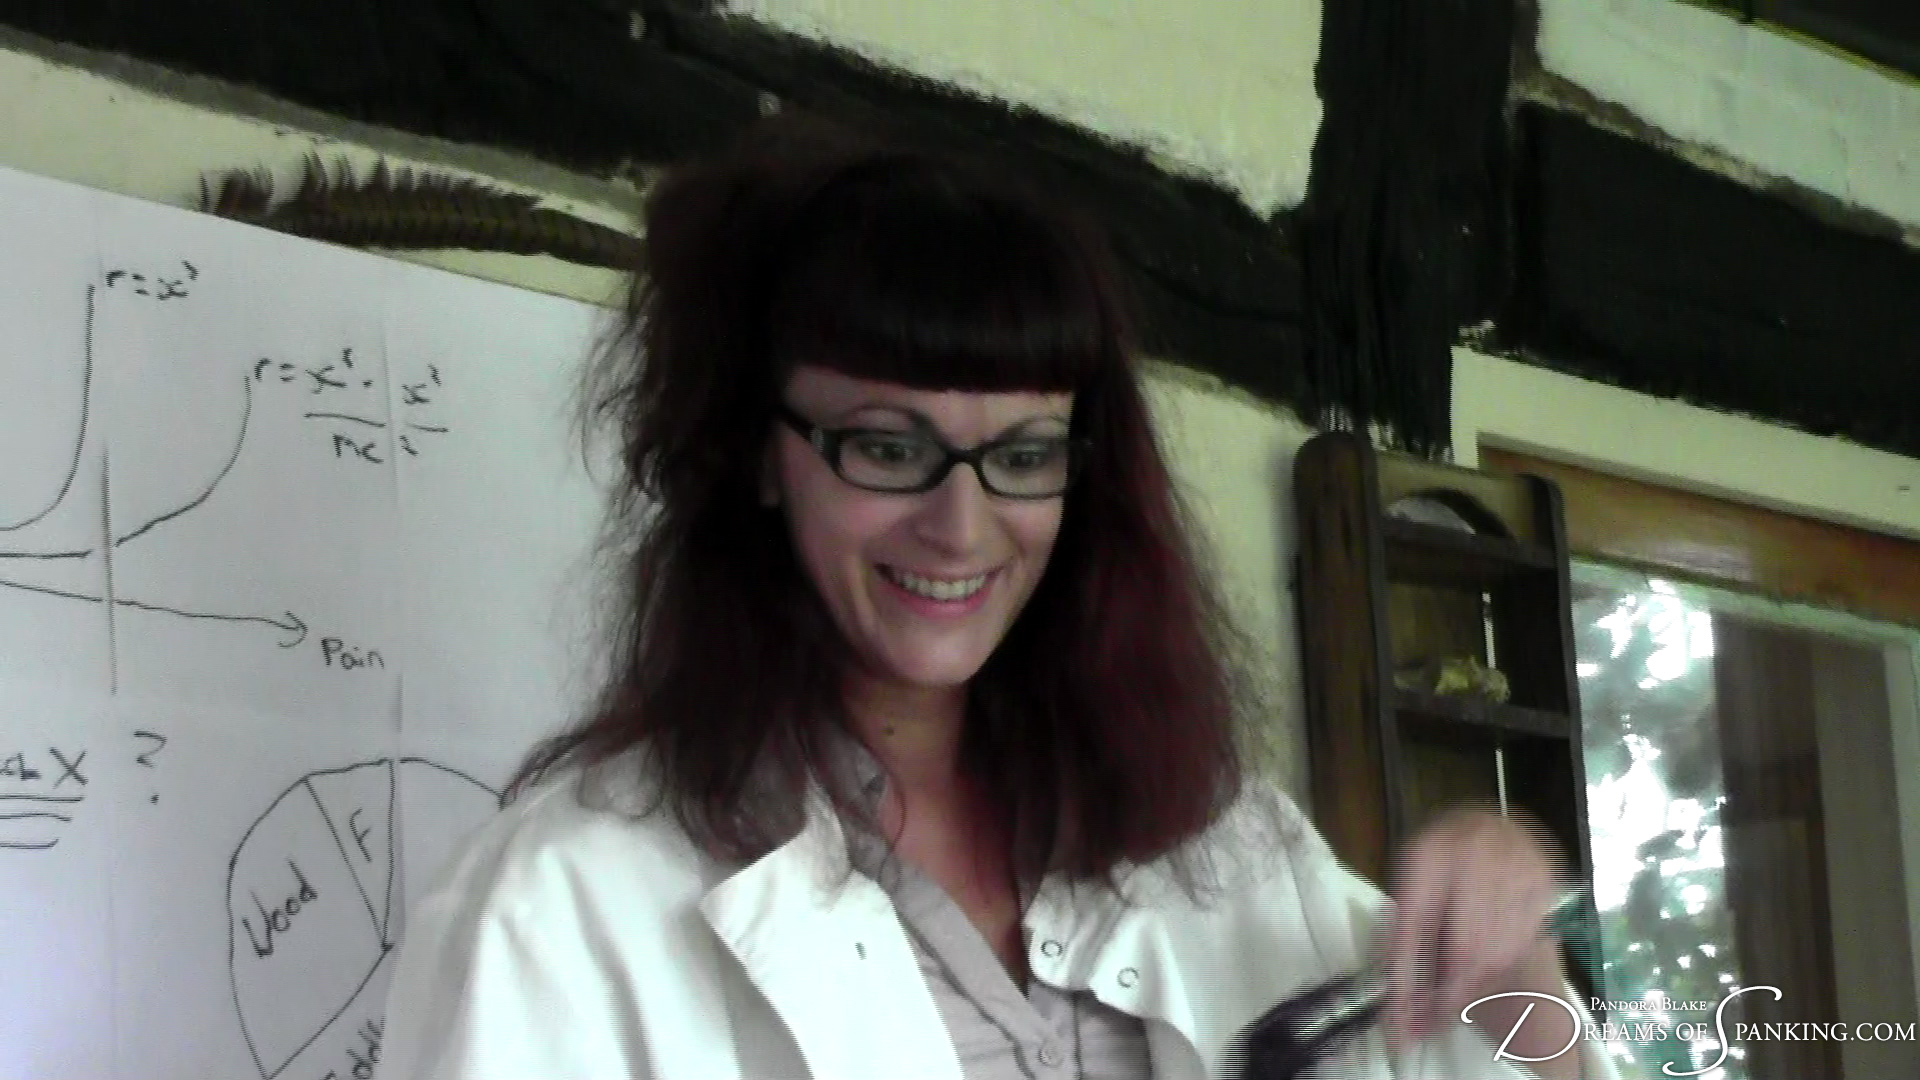 Leia-Ann Woods is a Doctor of Pain at Dreams of Spanking